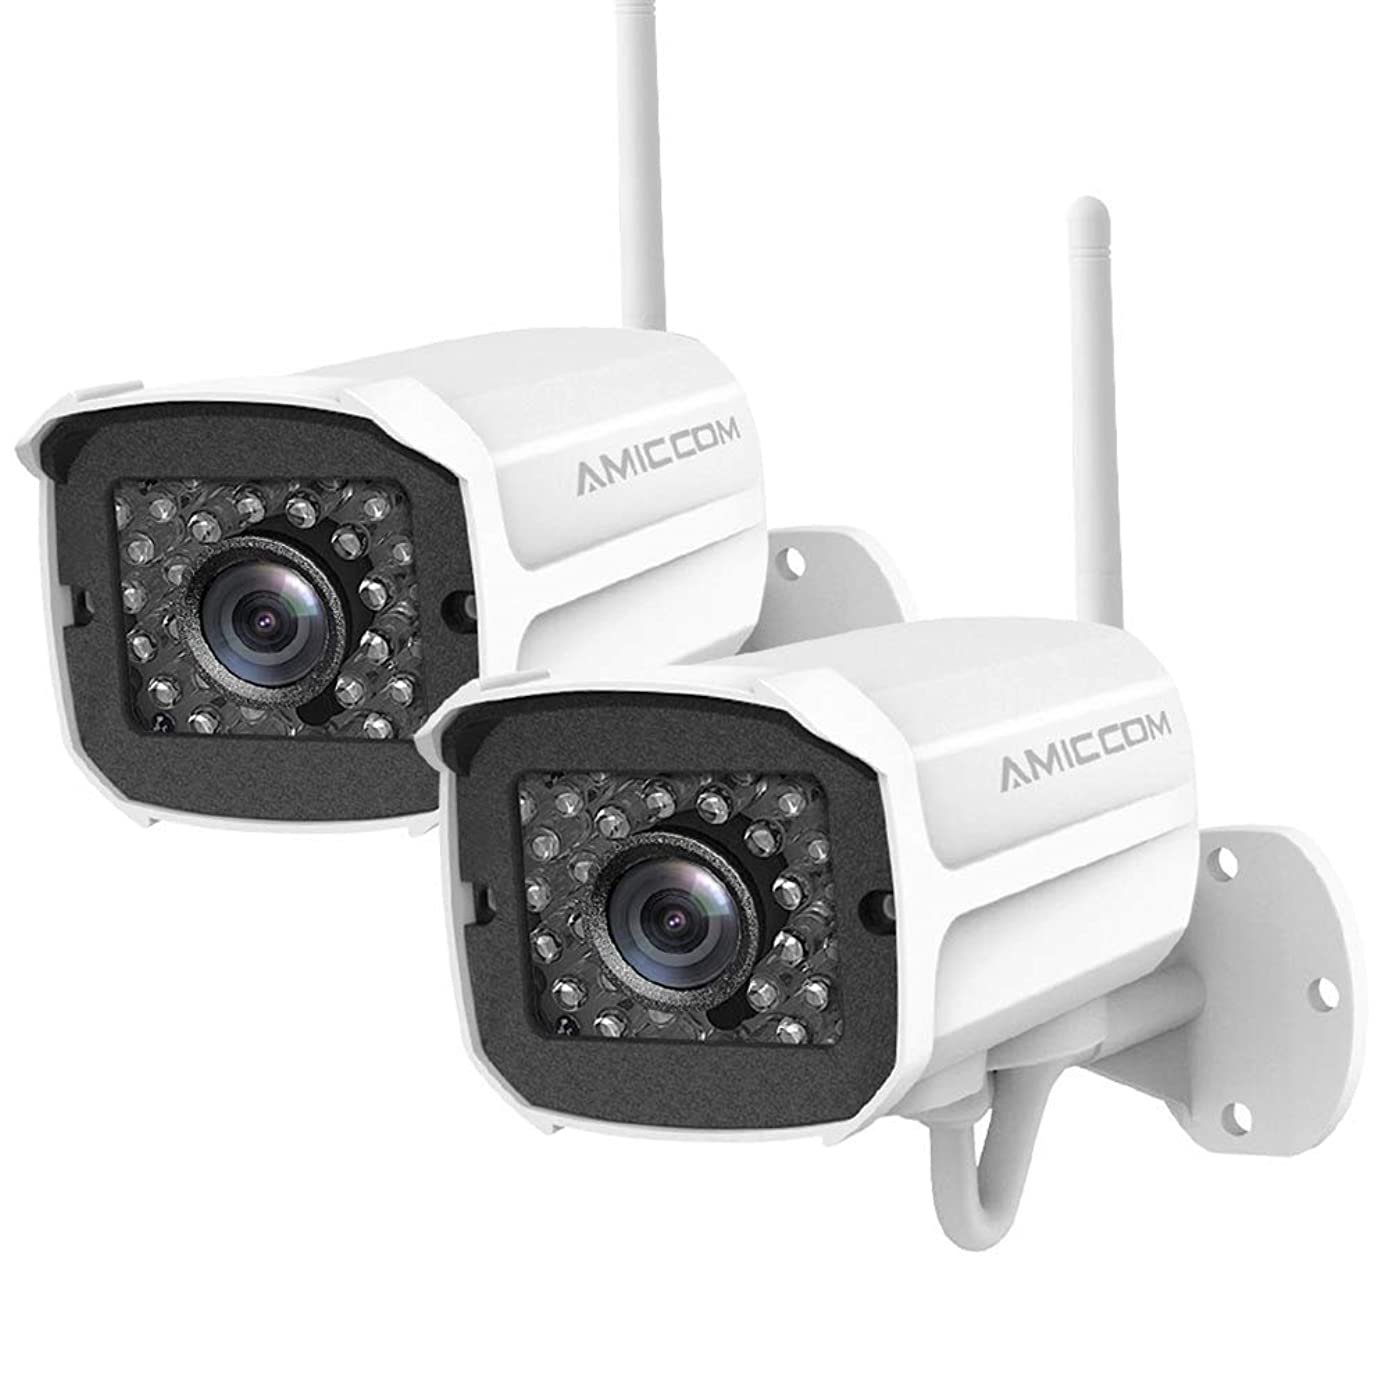 Outdoor Security Camera (2 Pack), 1080p IP Cam 2.4G IP66 Waterproof Night Vision Surveillance System with Two-Way Audio, Motion Detection, Activity Alert, Deterrent Alarm - iOS, Android App